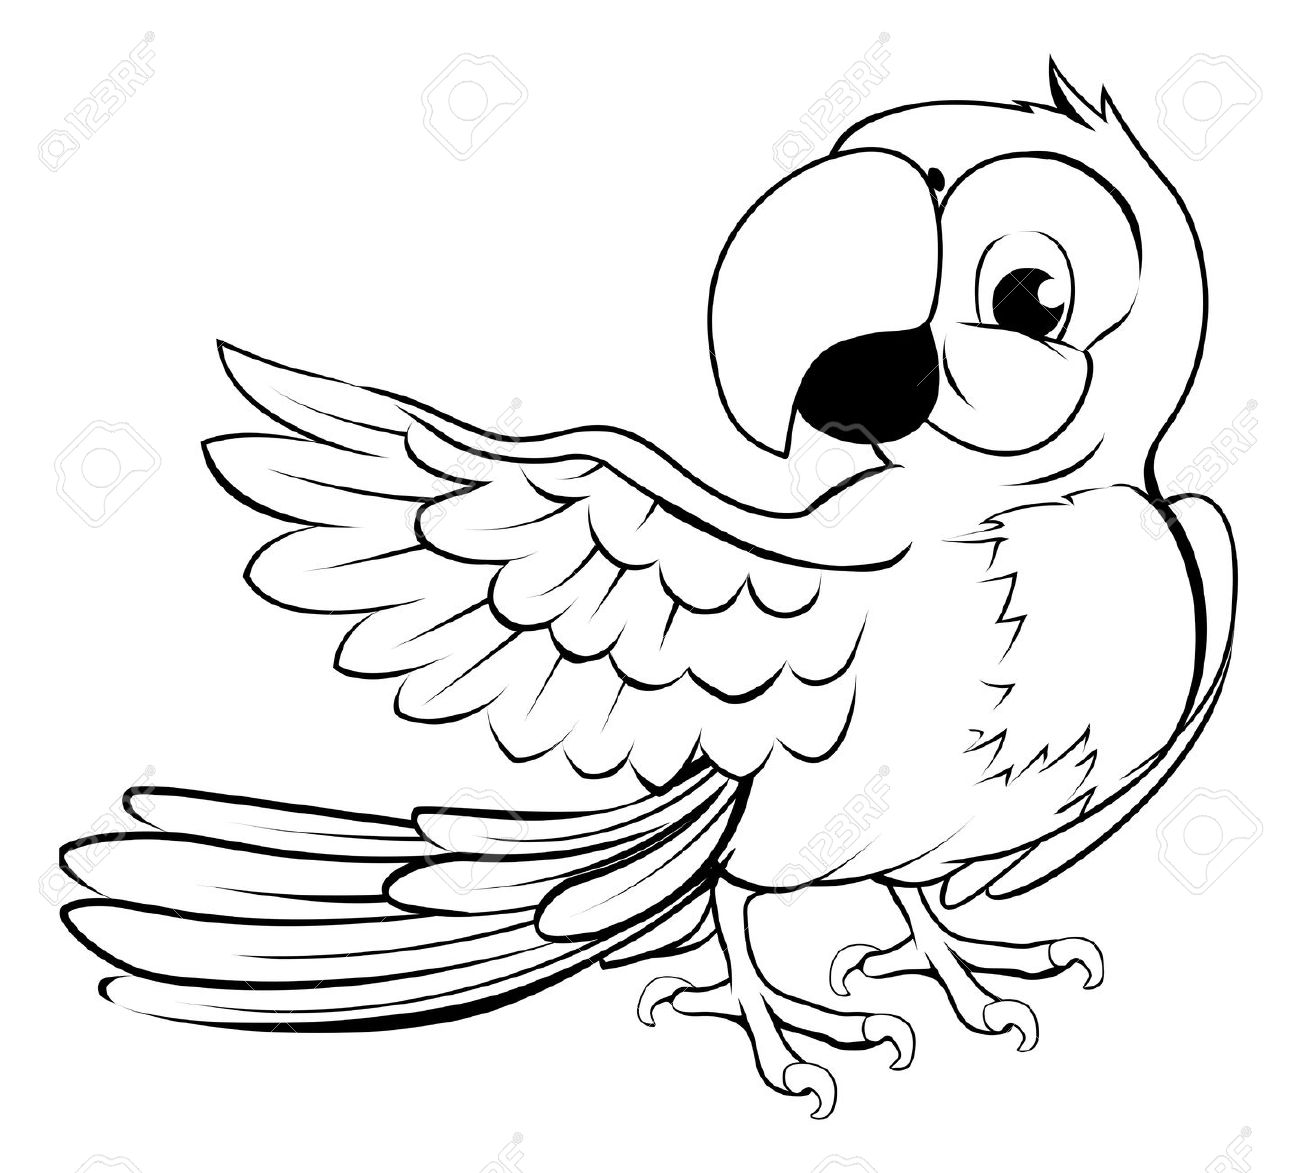 Parrot Black And White Clipart